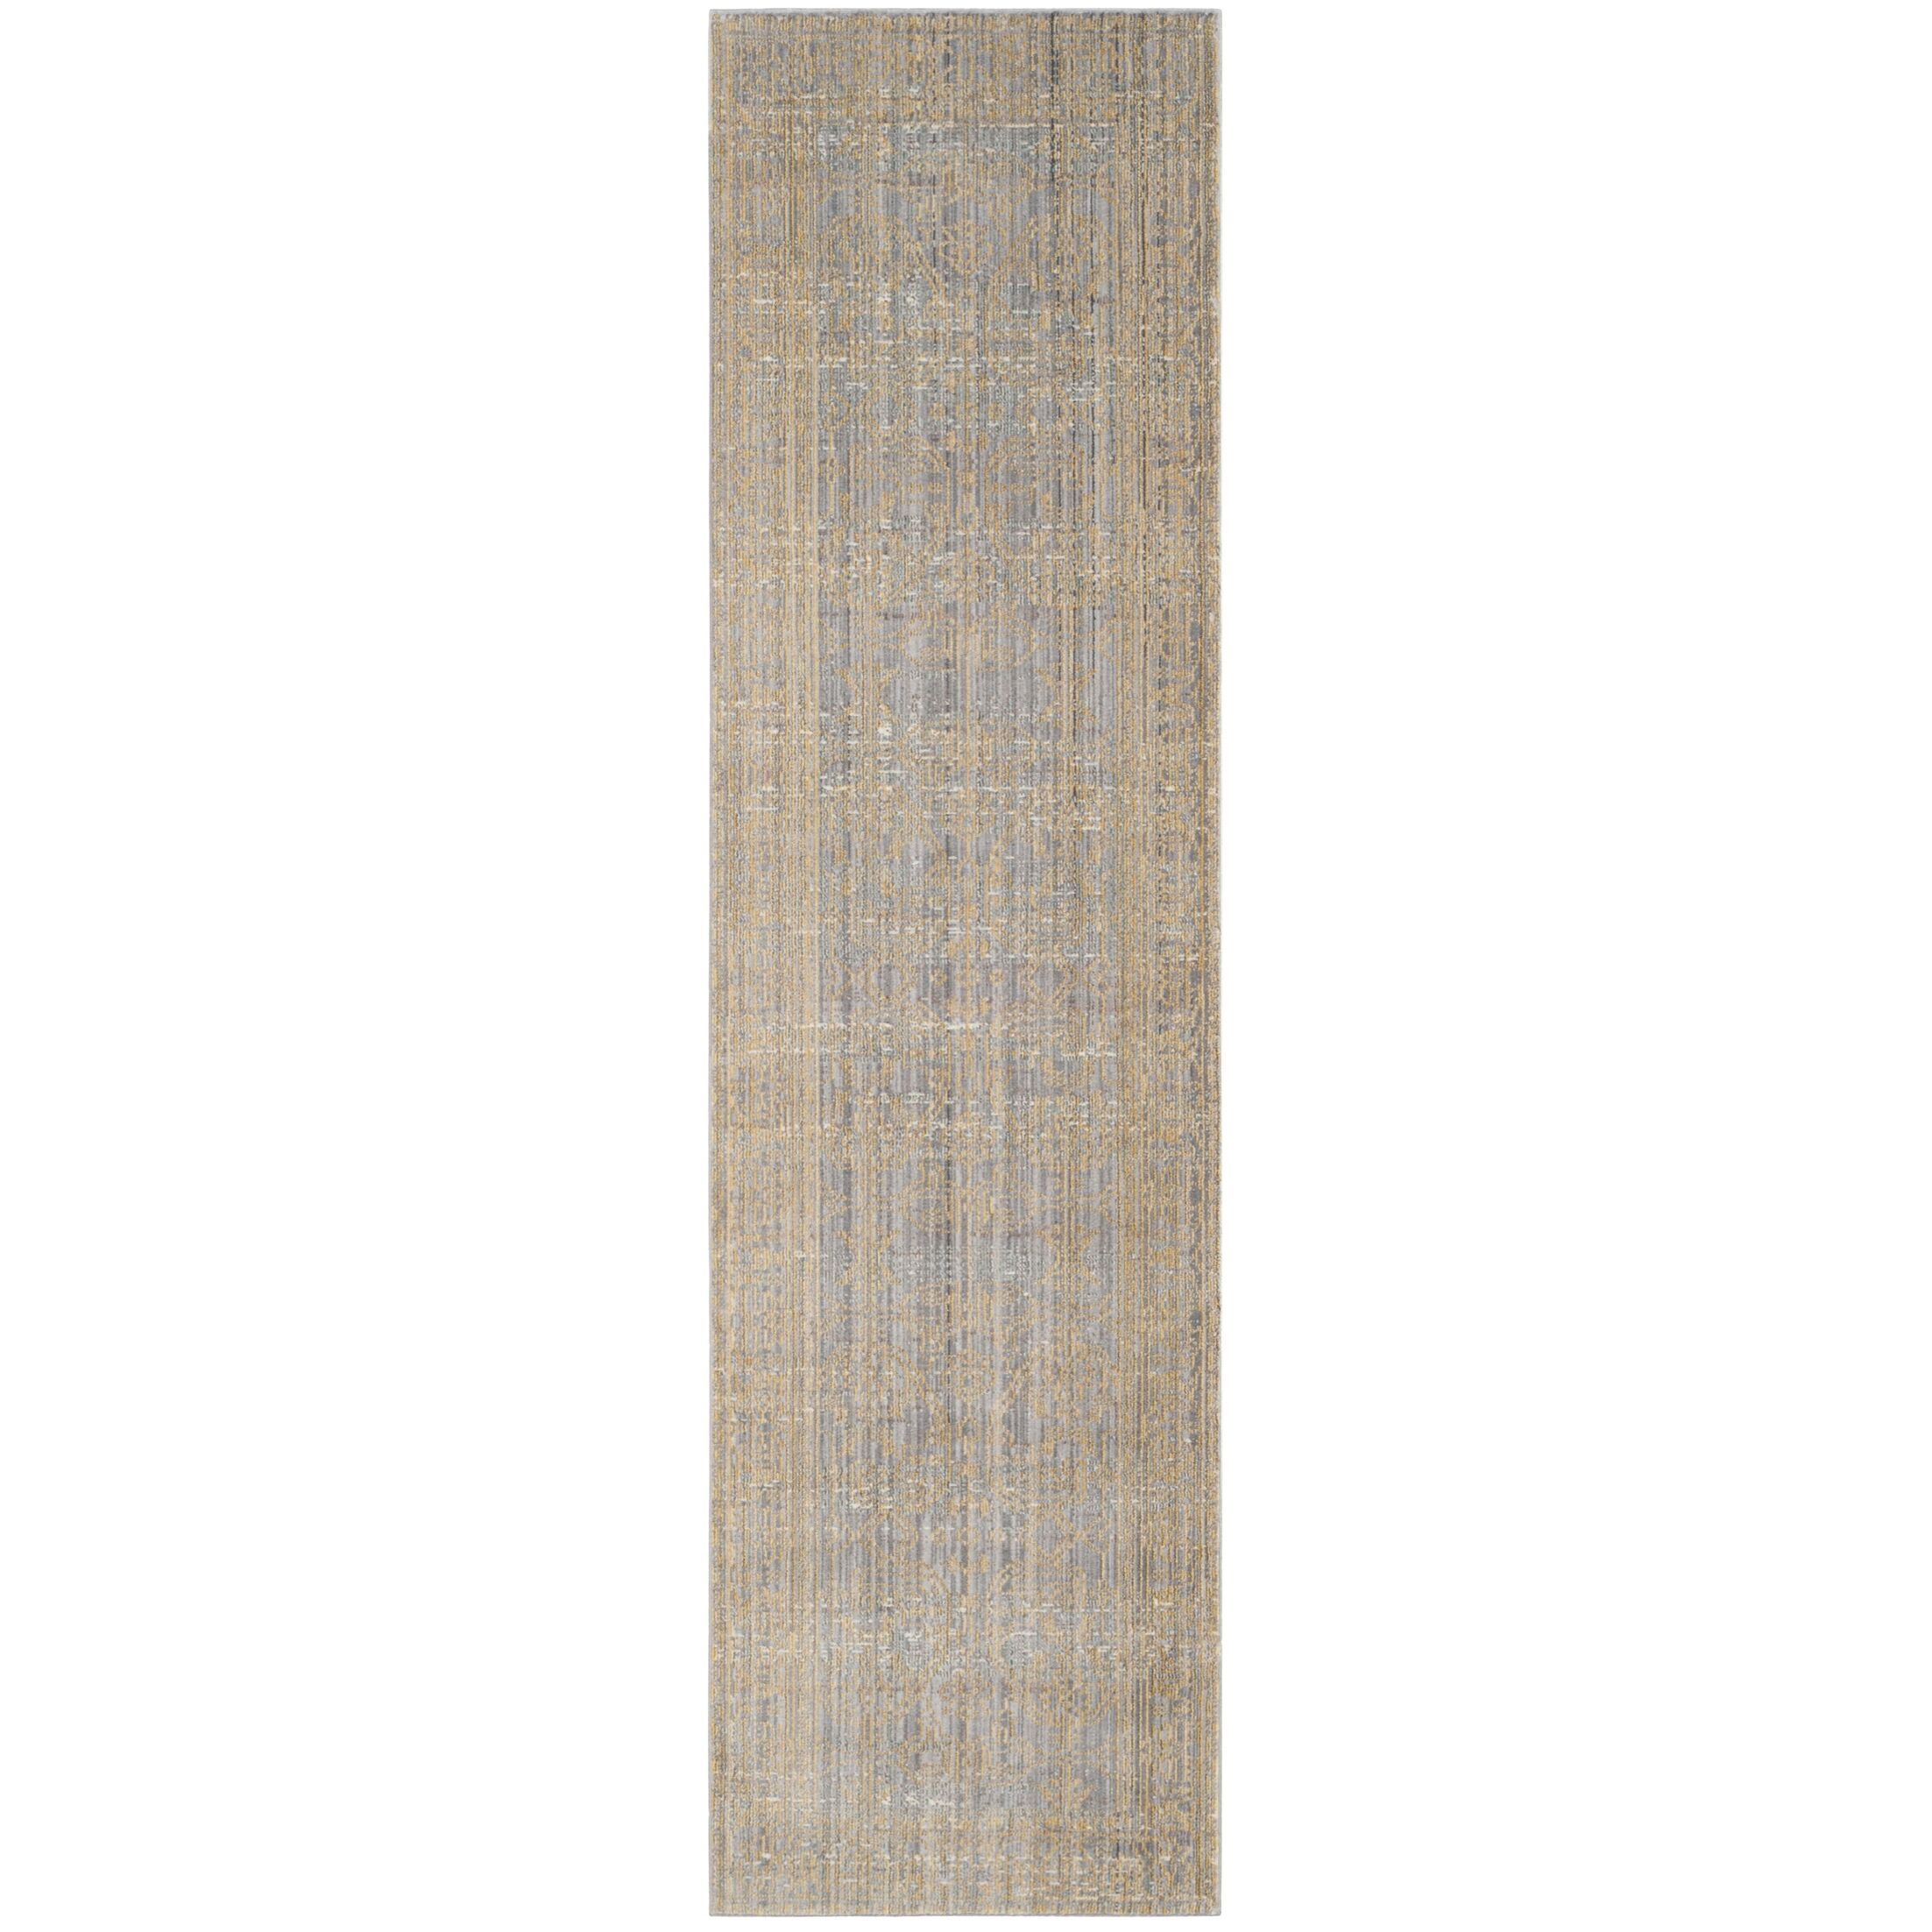 Menton Gray / Gold Area Rug Rug Size: Runner 2'3